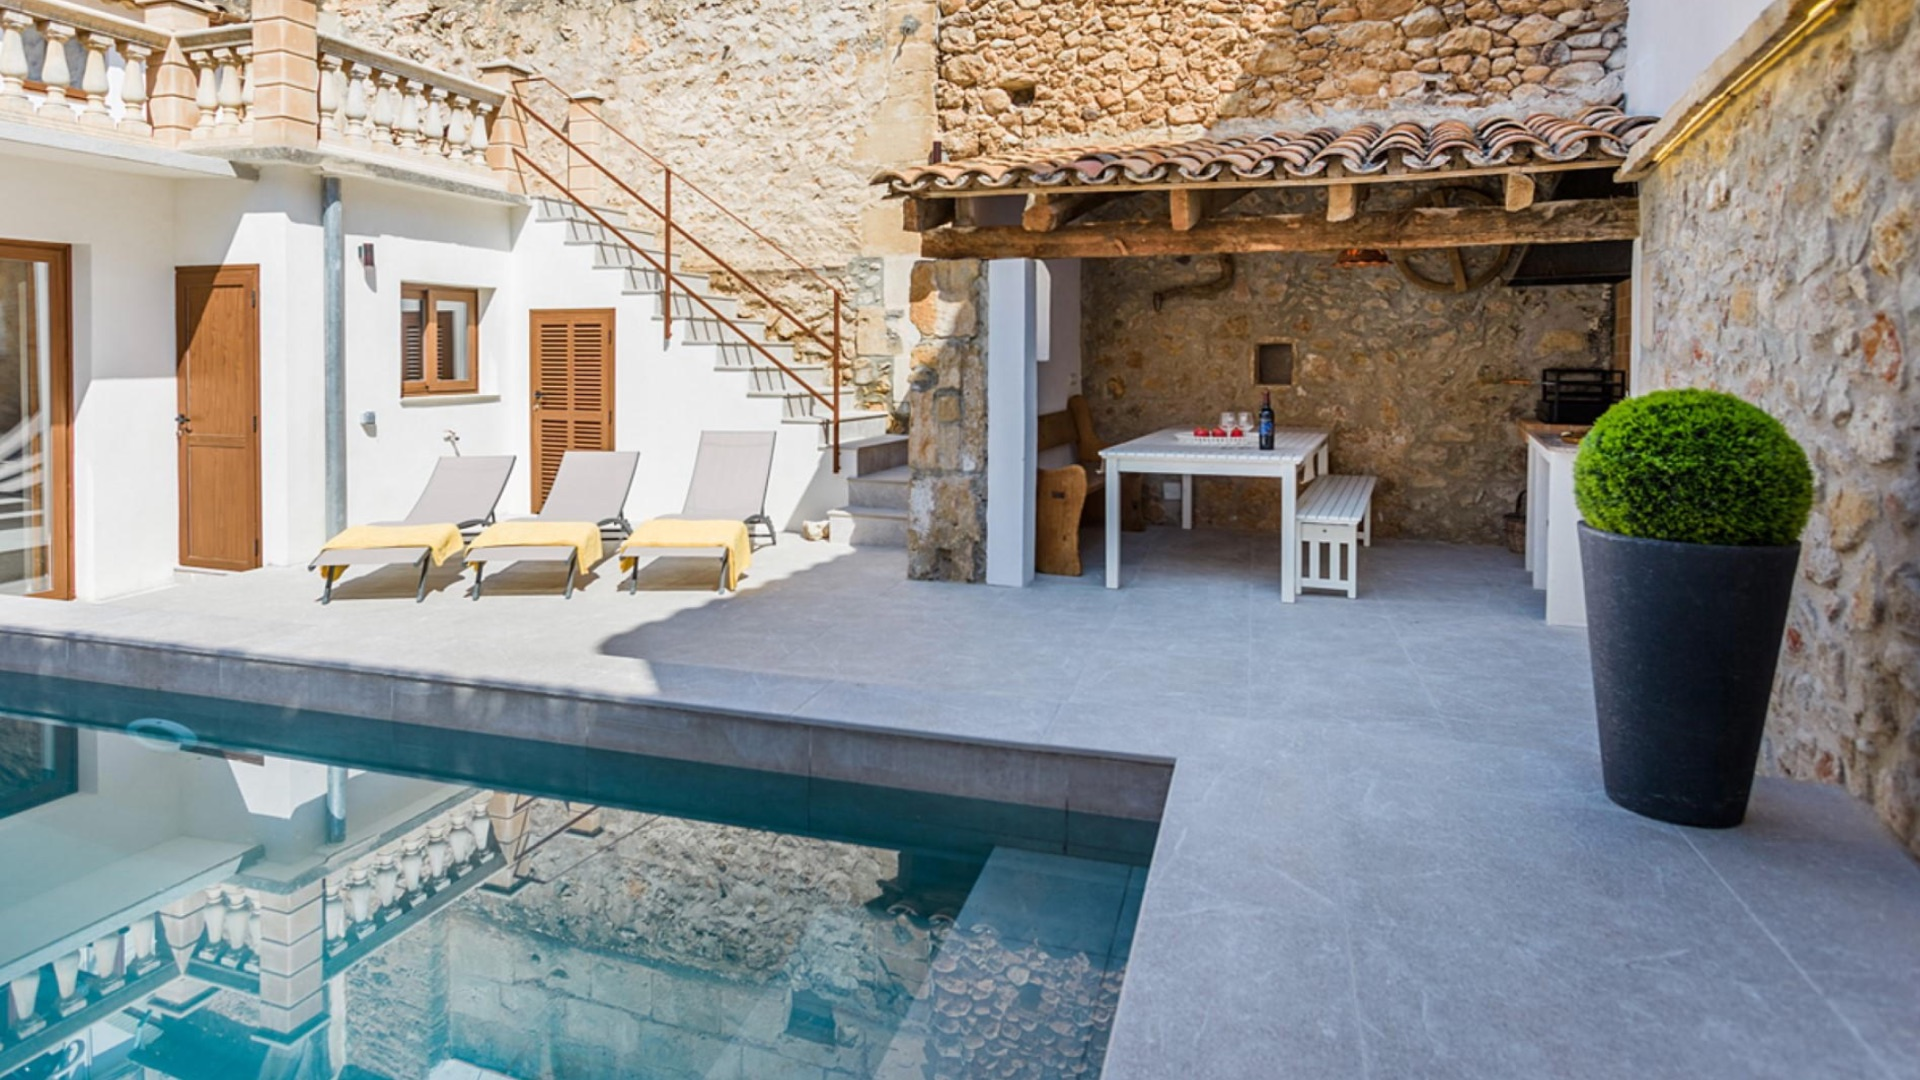 San_Jordi_pollensa_Malorca_Luxury_Townhouse_Sleeps_6